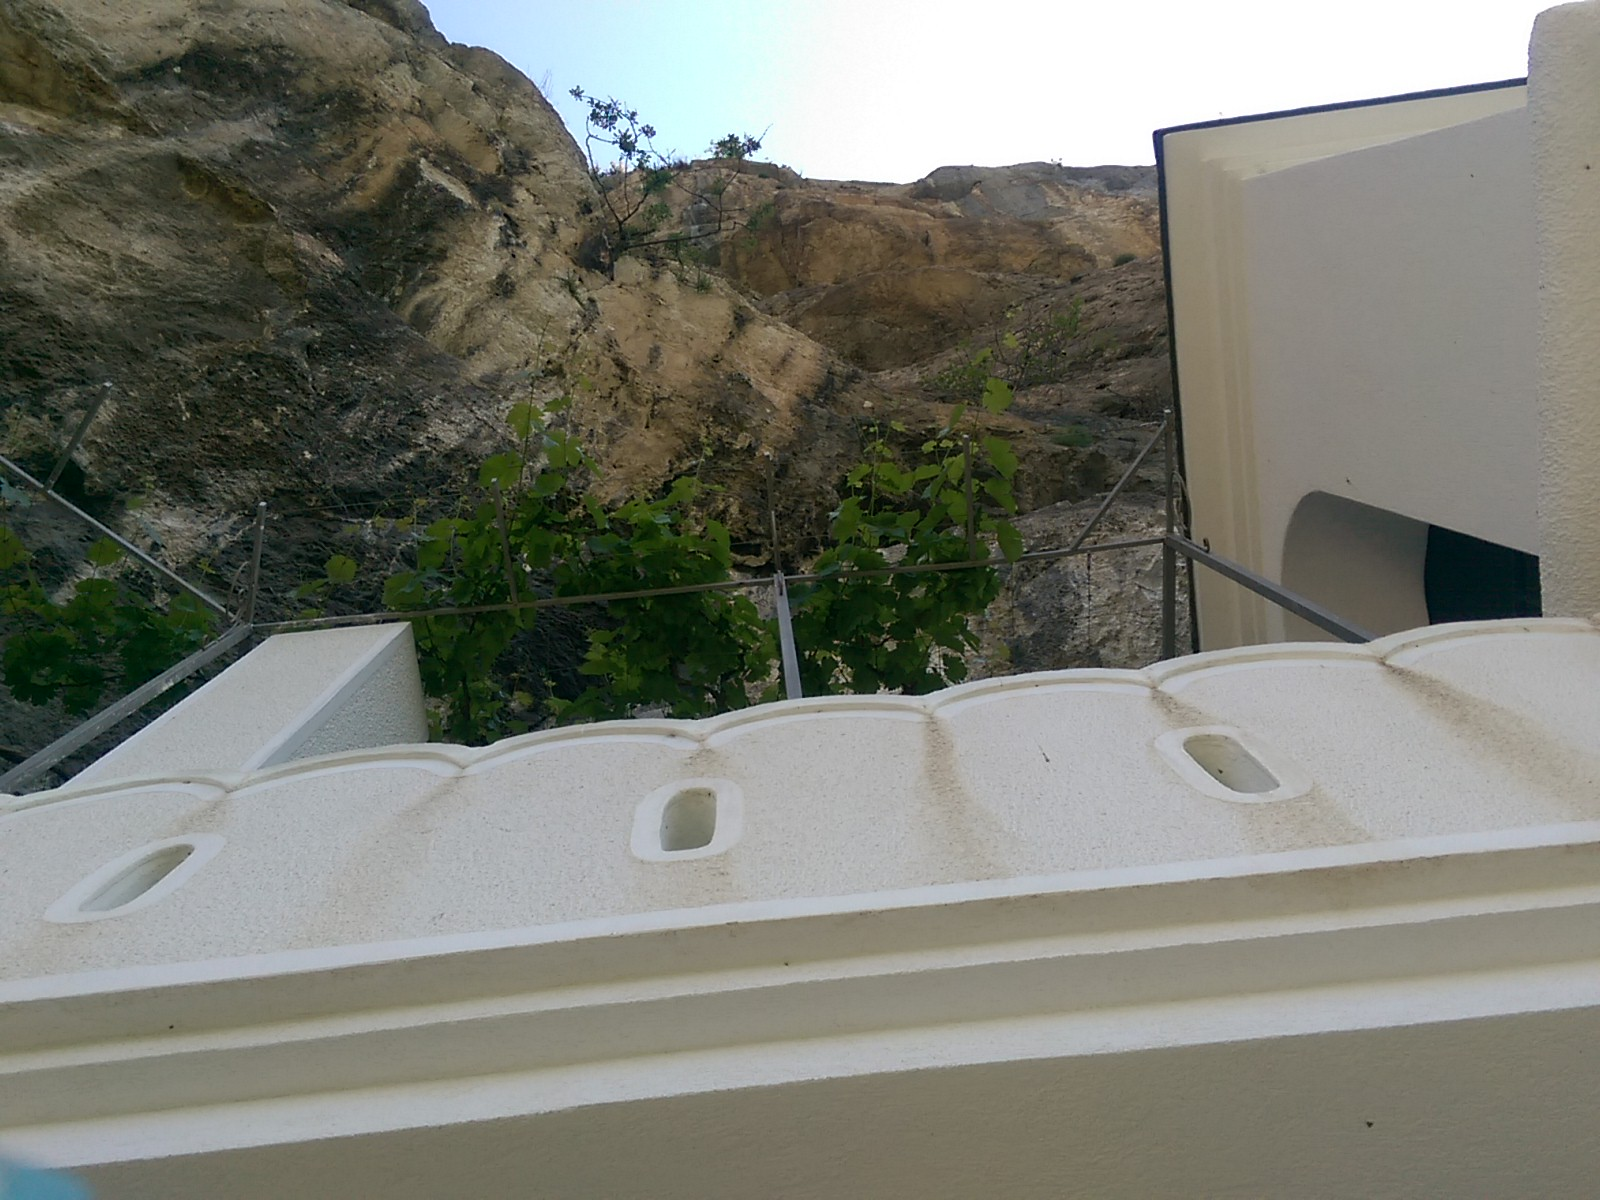 View from below of a white building and cliff rocks directly above